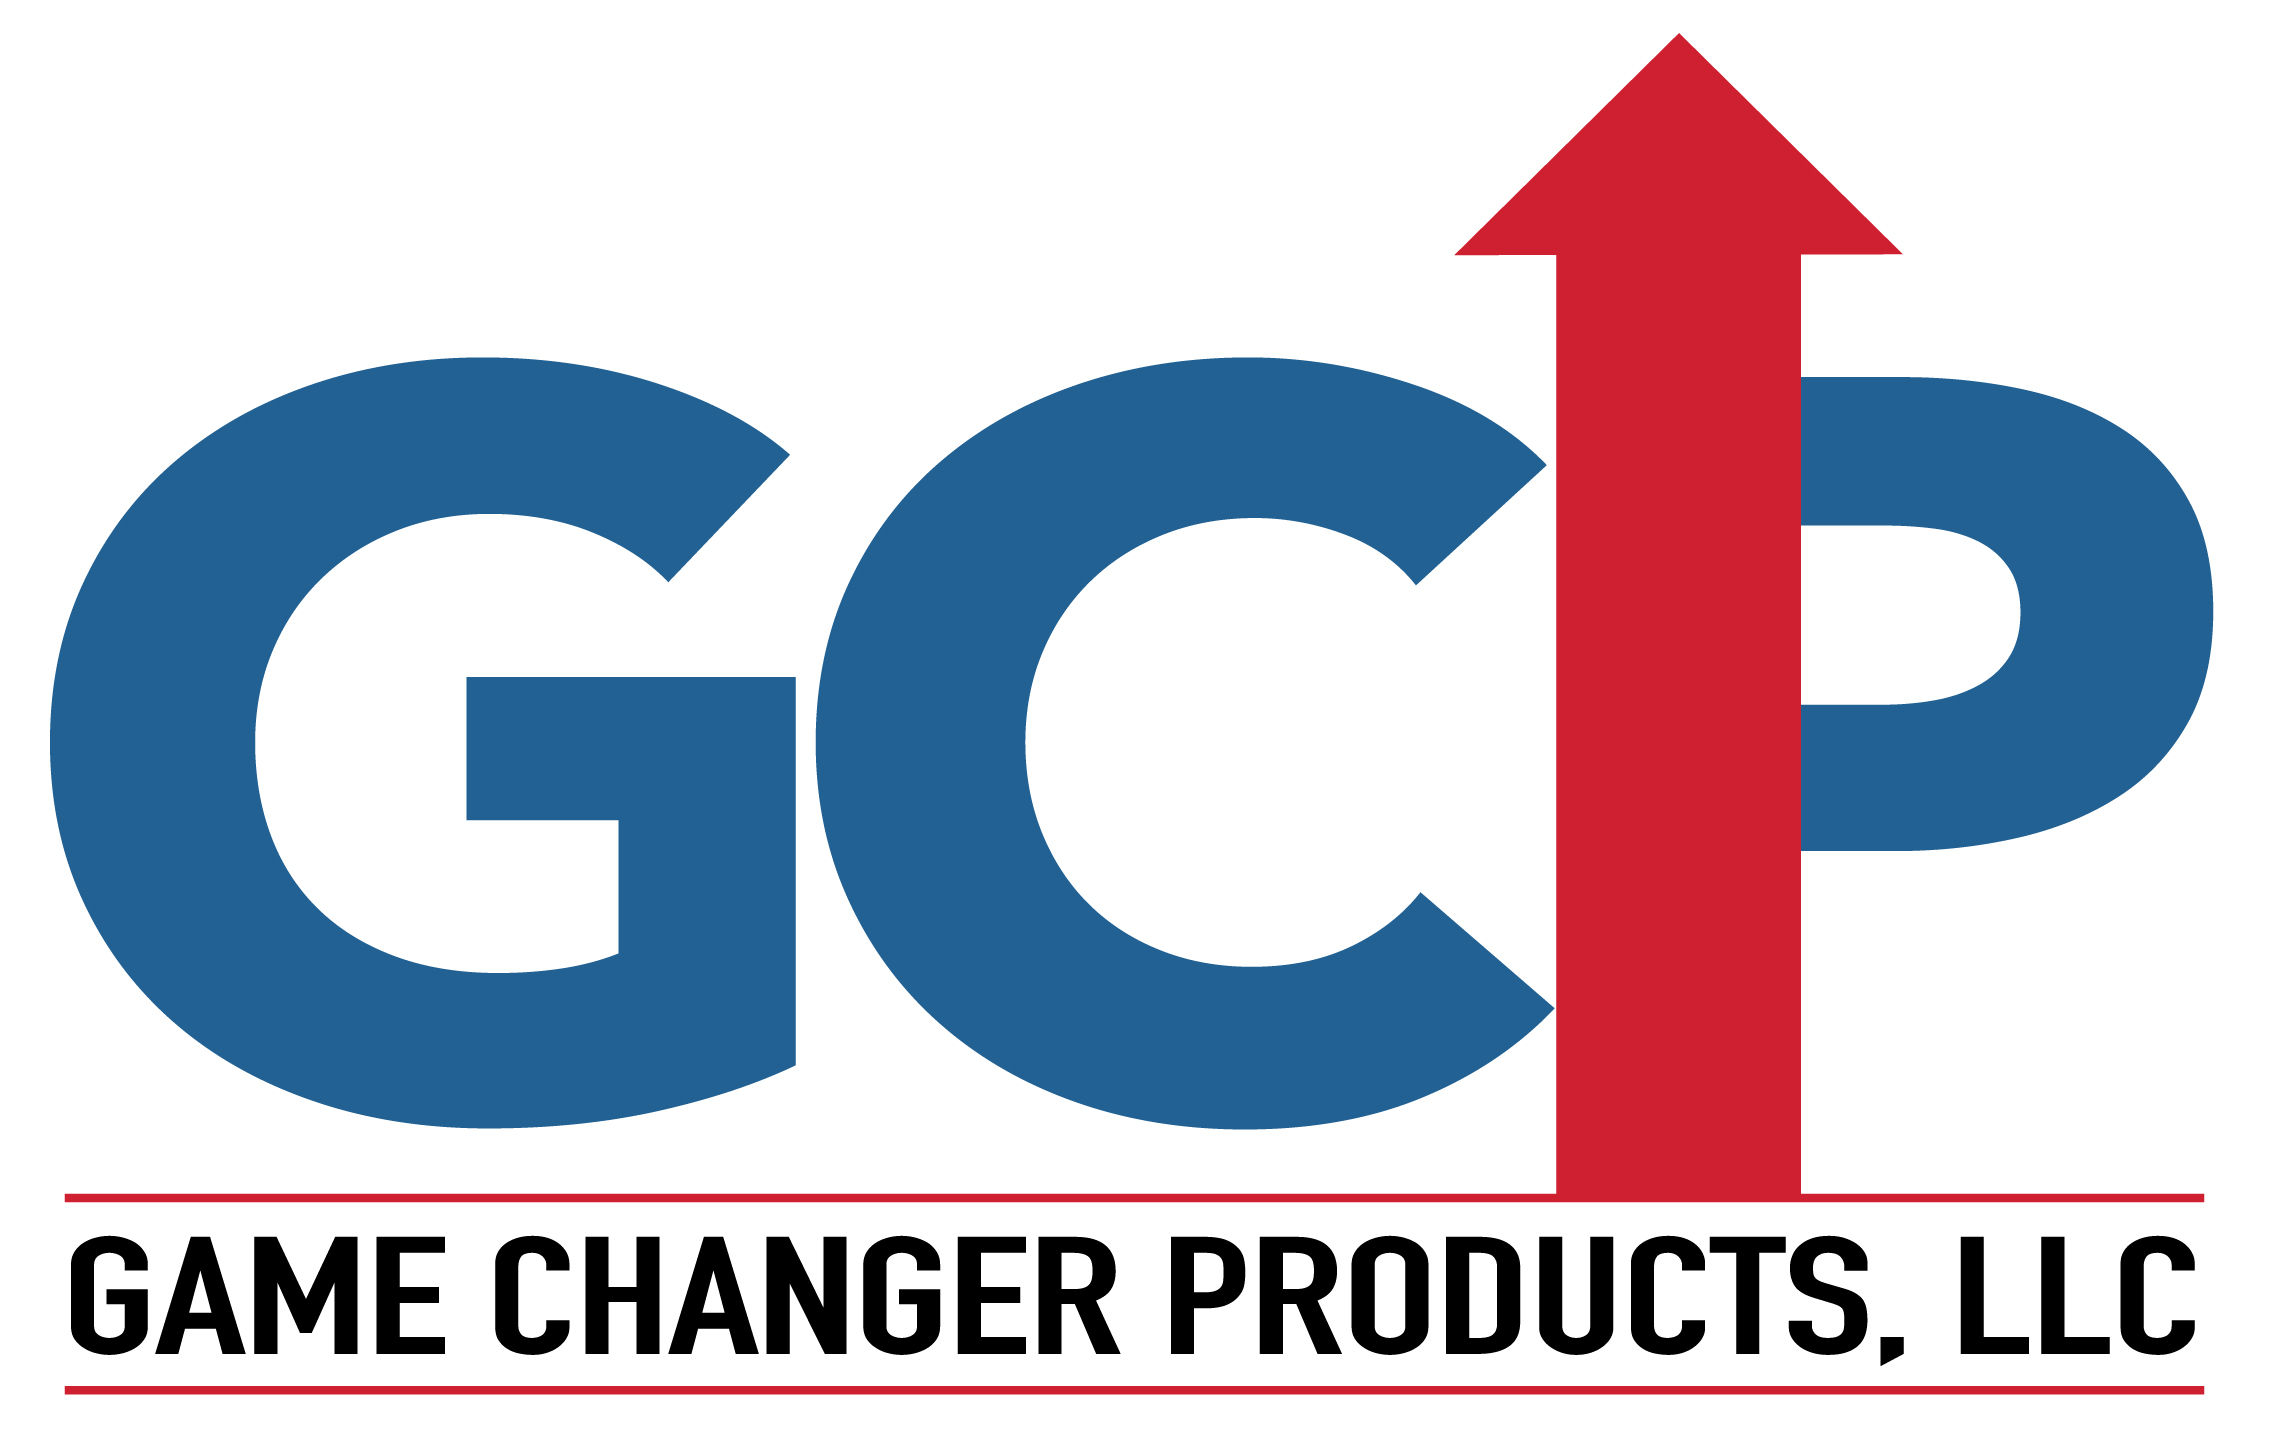 Game Changer Products LLC Logo in Color